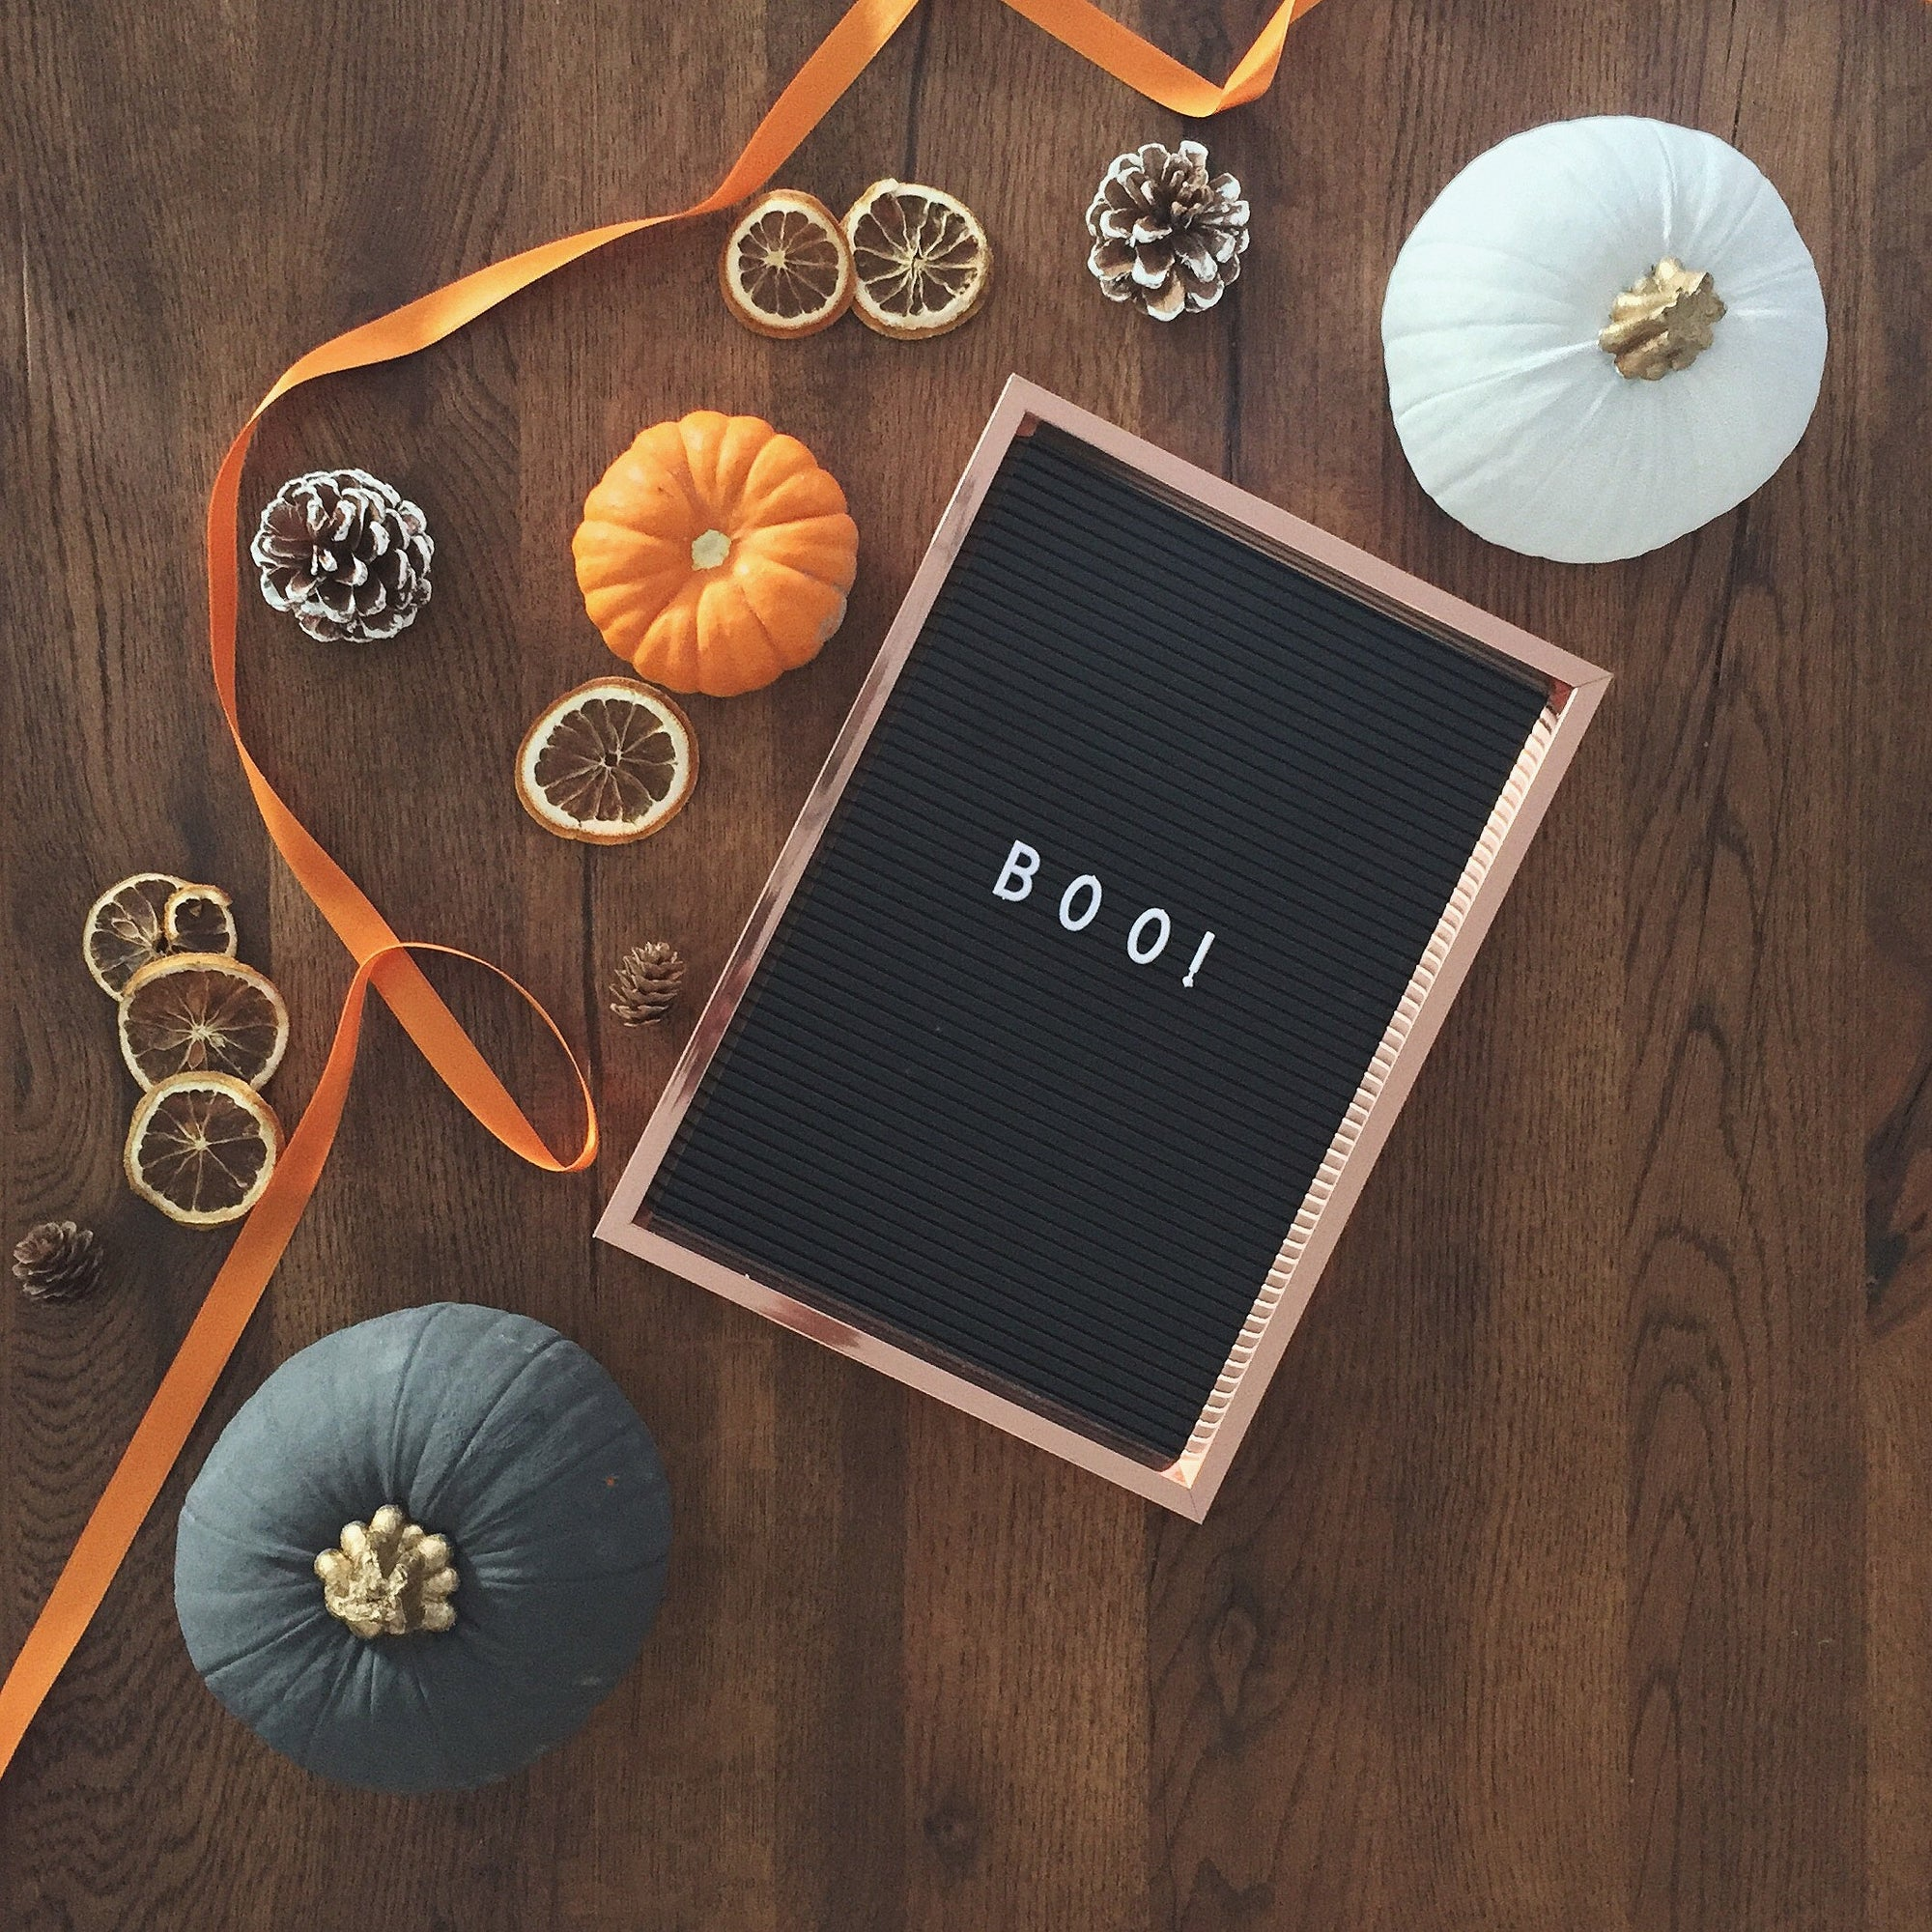 Halloween ideas for kids in the time of Covid